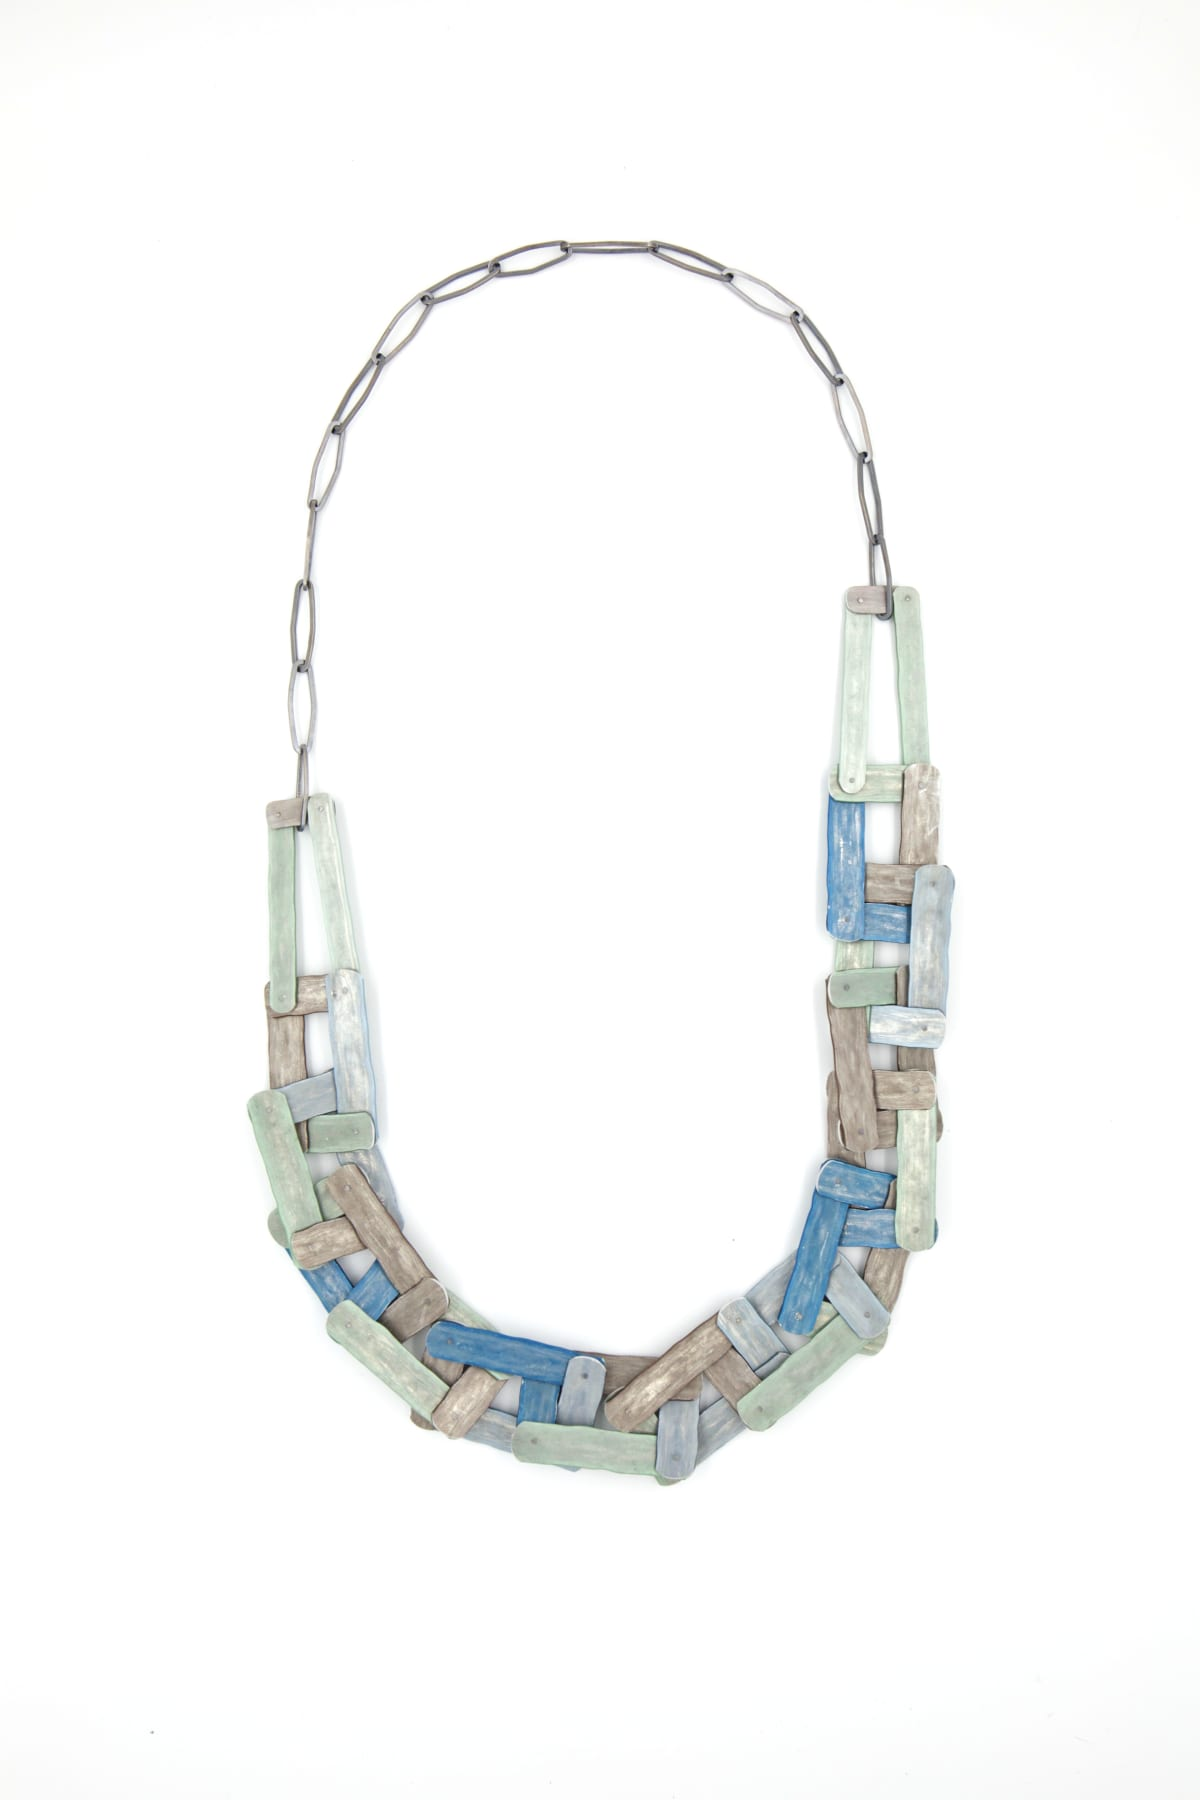 Taylor Zarkades King, Planked Chain Link Necklace